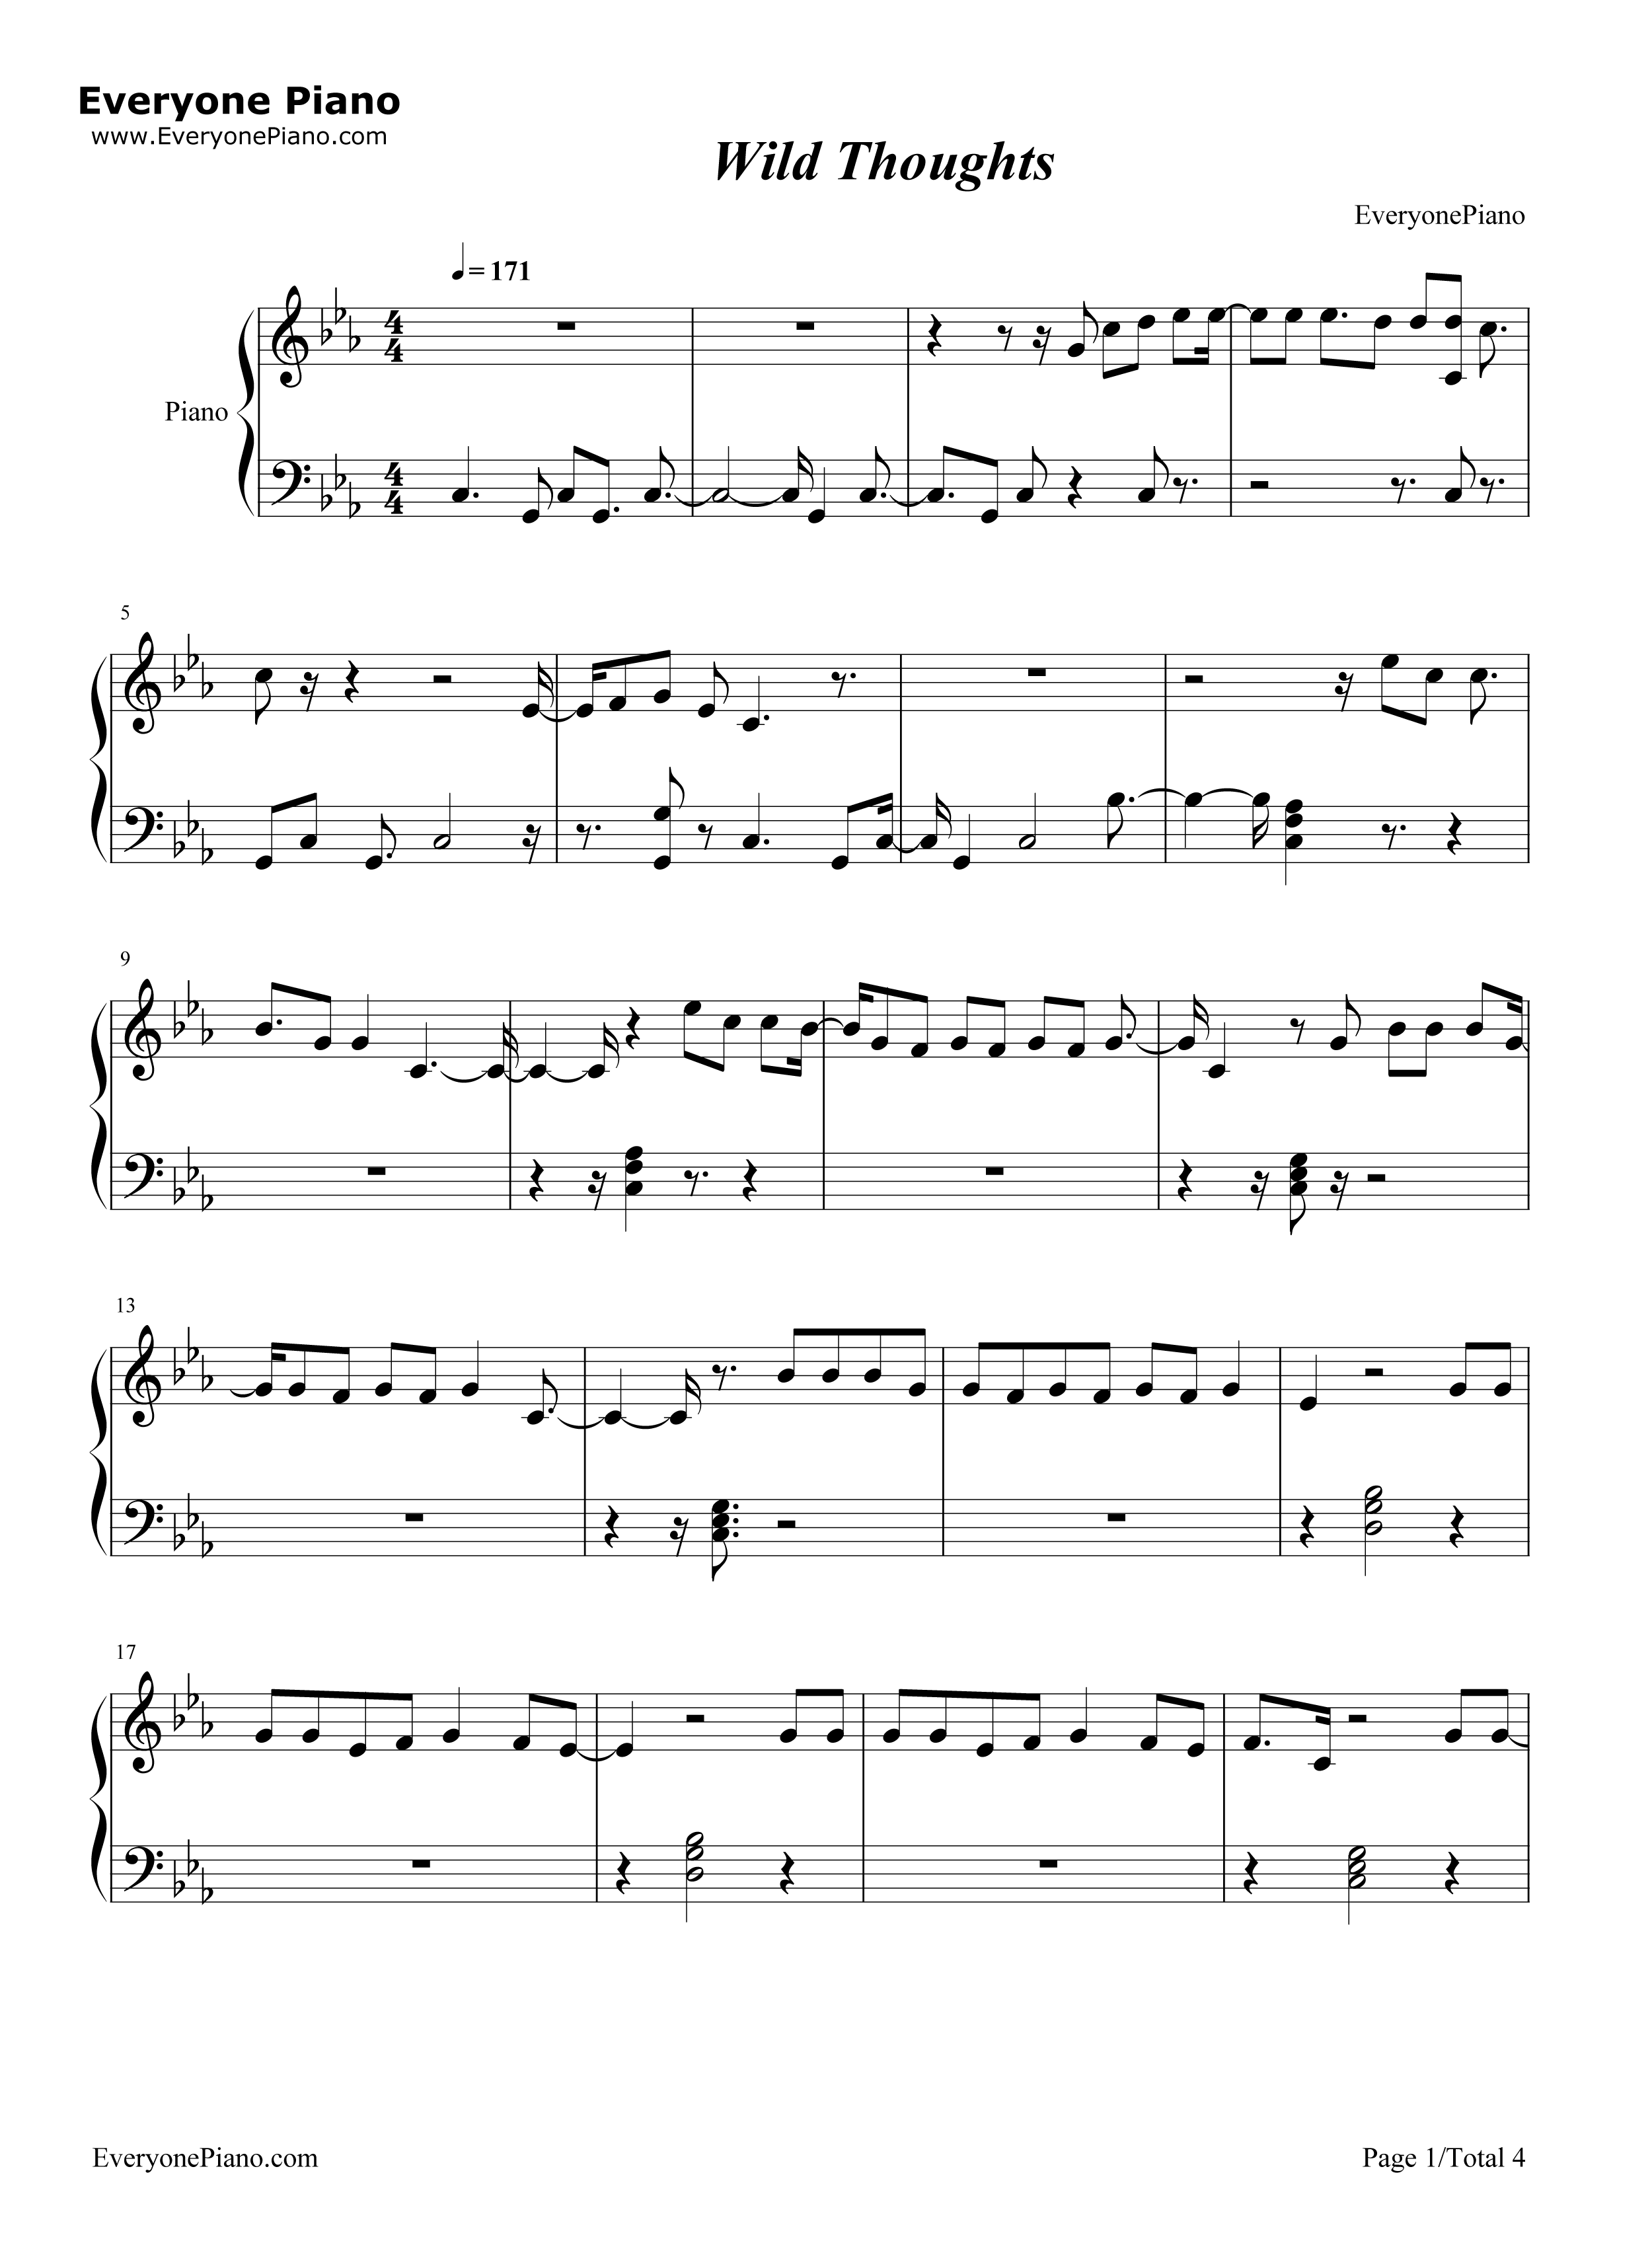 Wild thoughts stave preview 1 free piano sheet music piano chords listen now print sheet wild thoughts stave preview 1 hexwebz Gallery